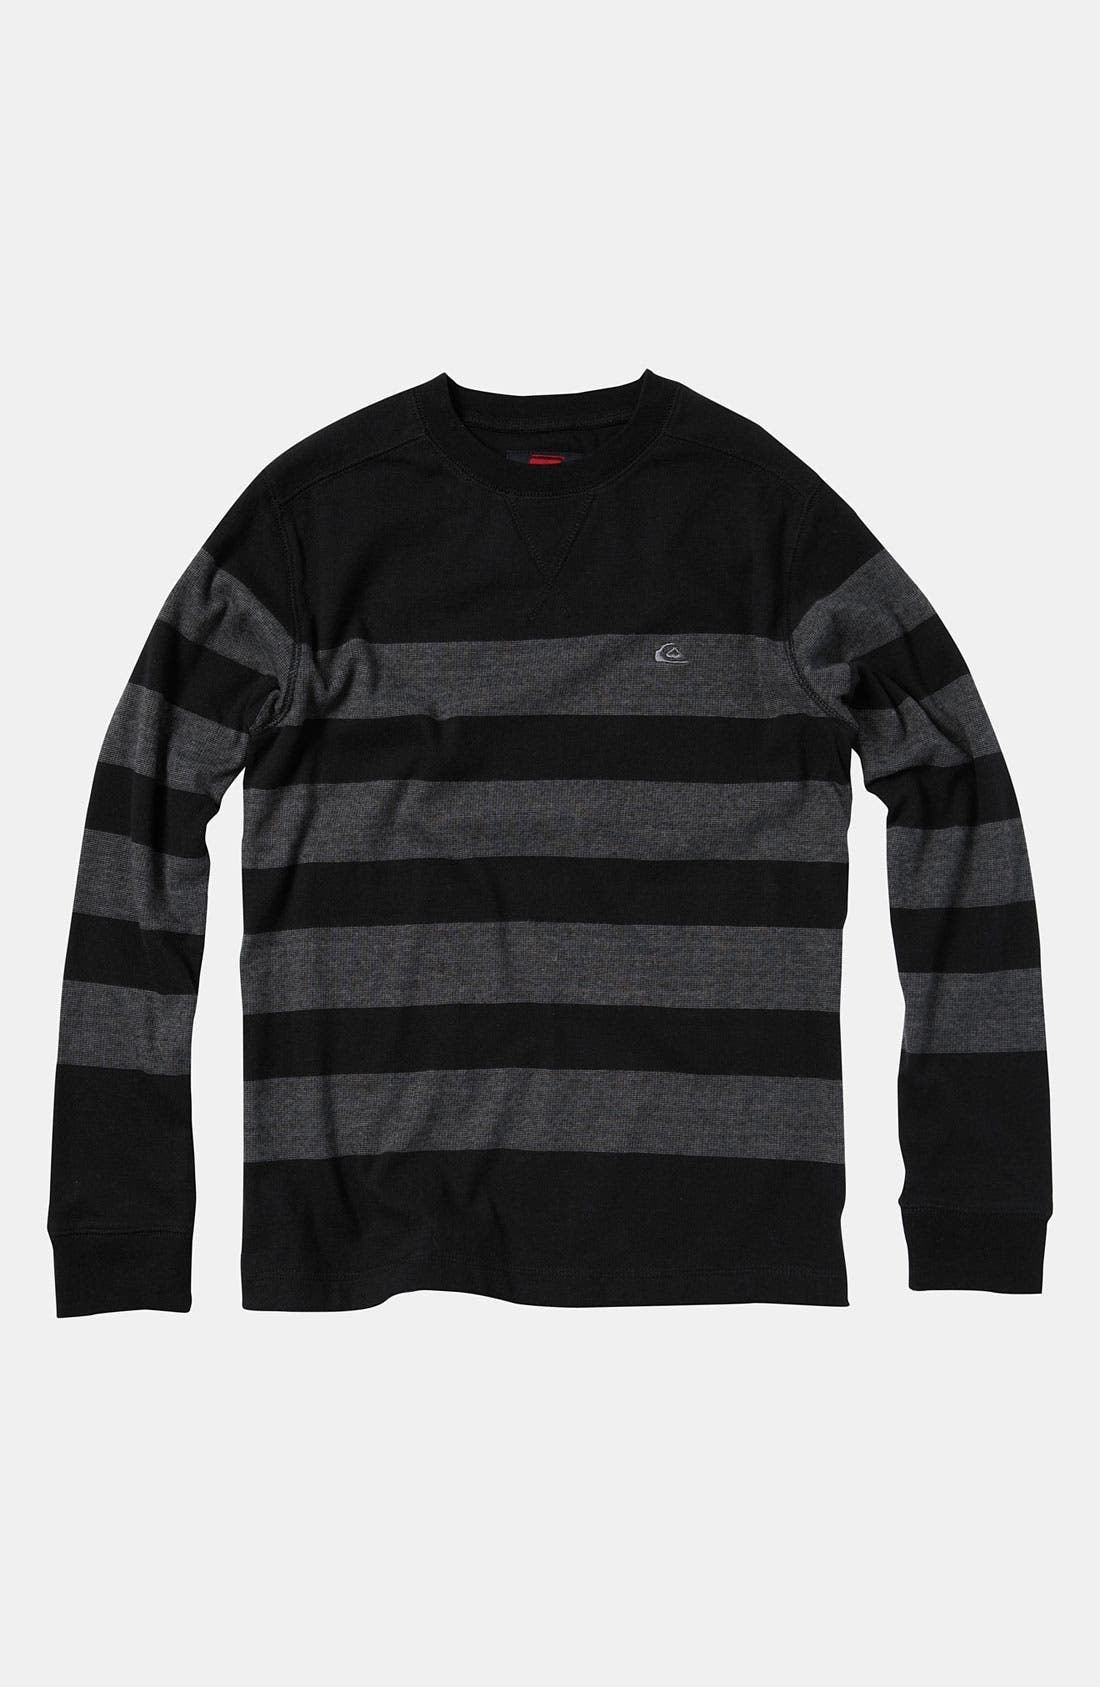 Alternate Image 1 Selected - Quiksilver 'Snit Stripe' Top (Big Boys)